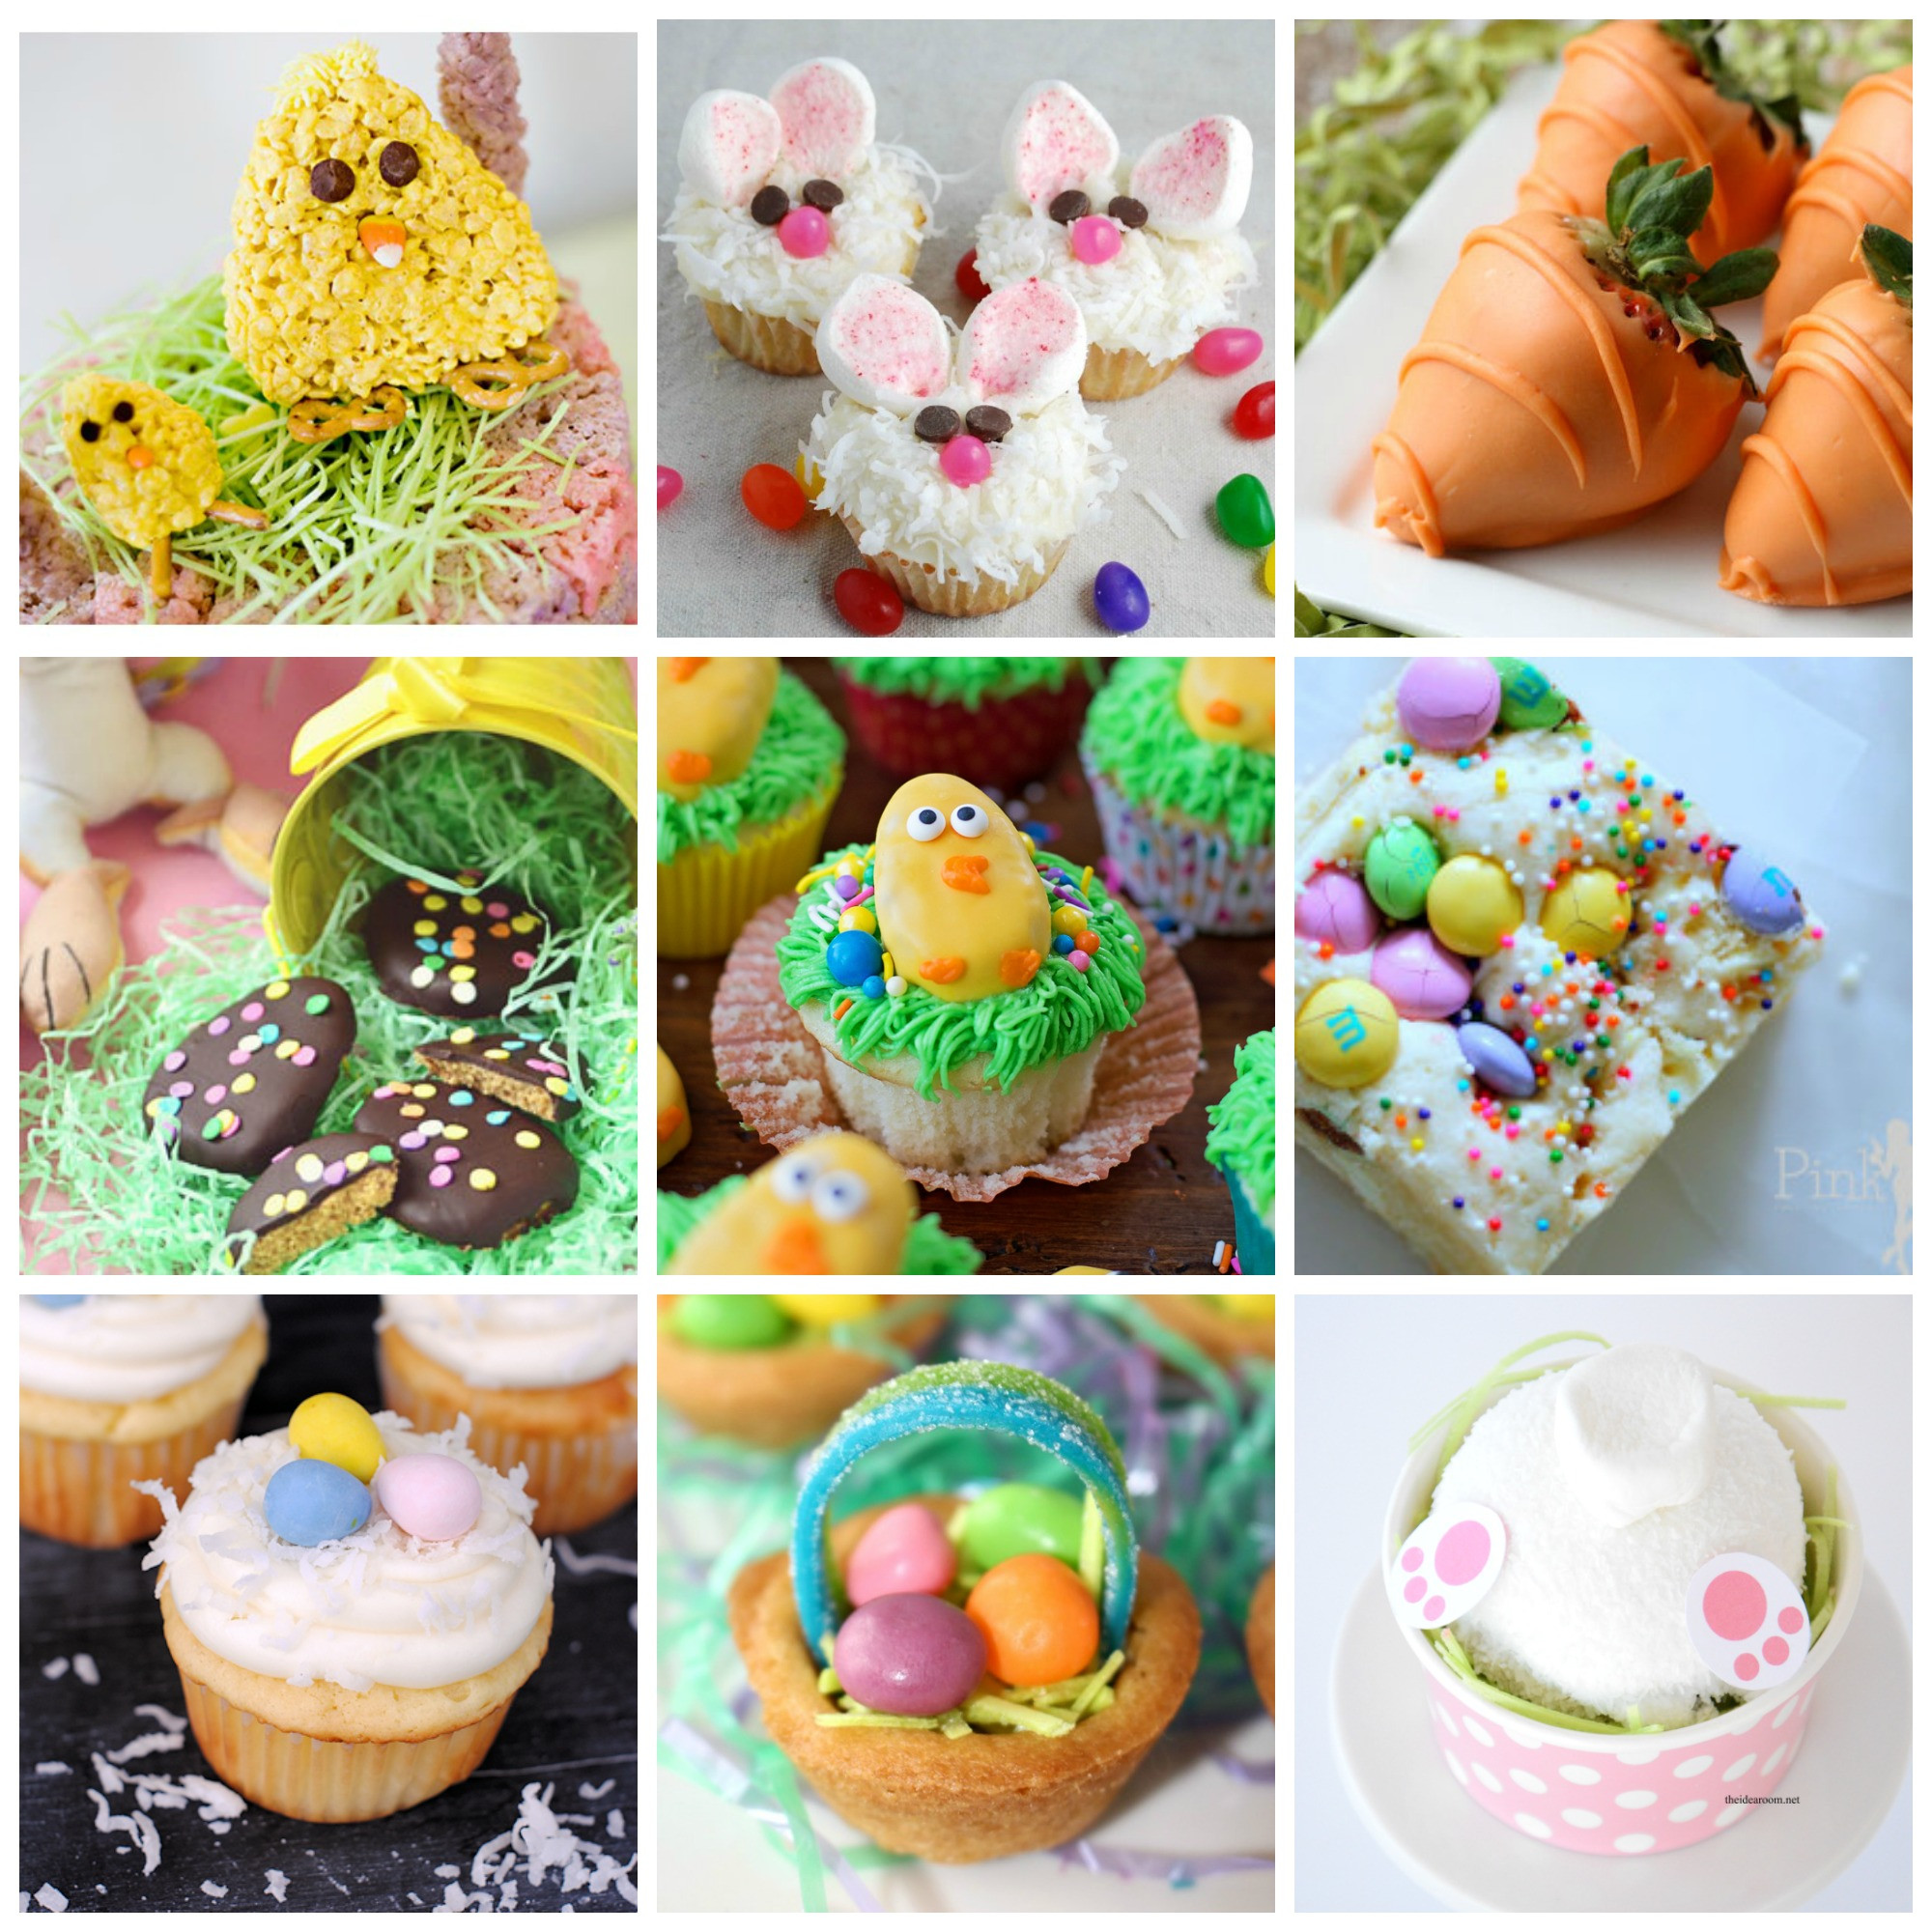 Easter Desserts Ideas  Easter Desserts 20 ideas for you The Country Chic Cottage